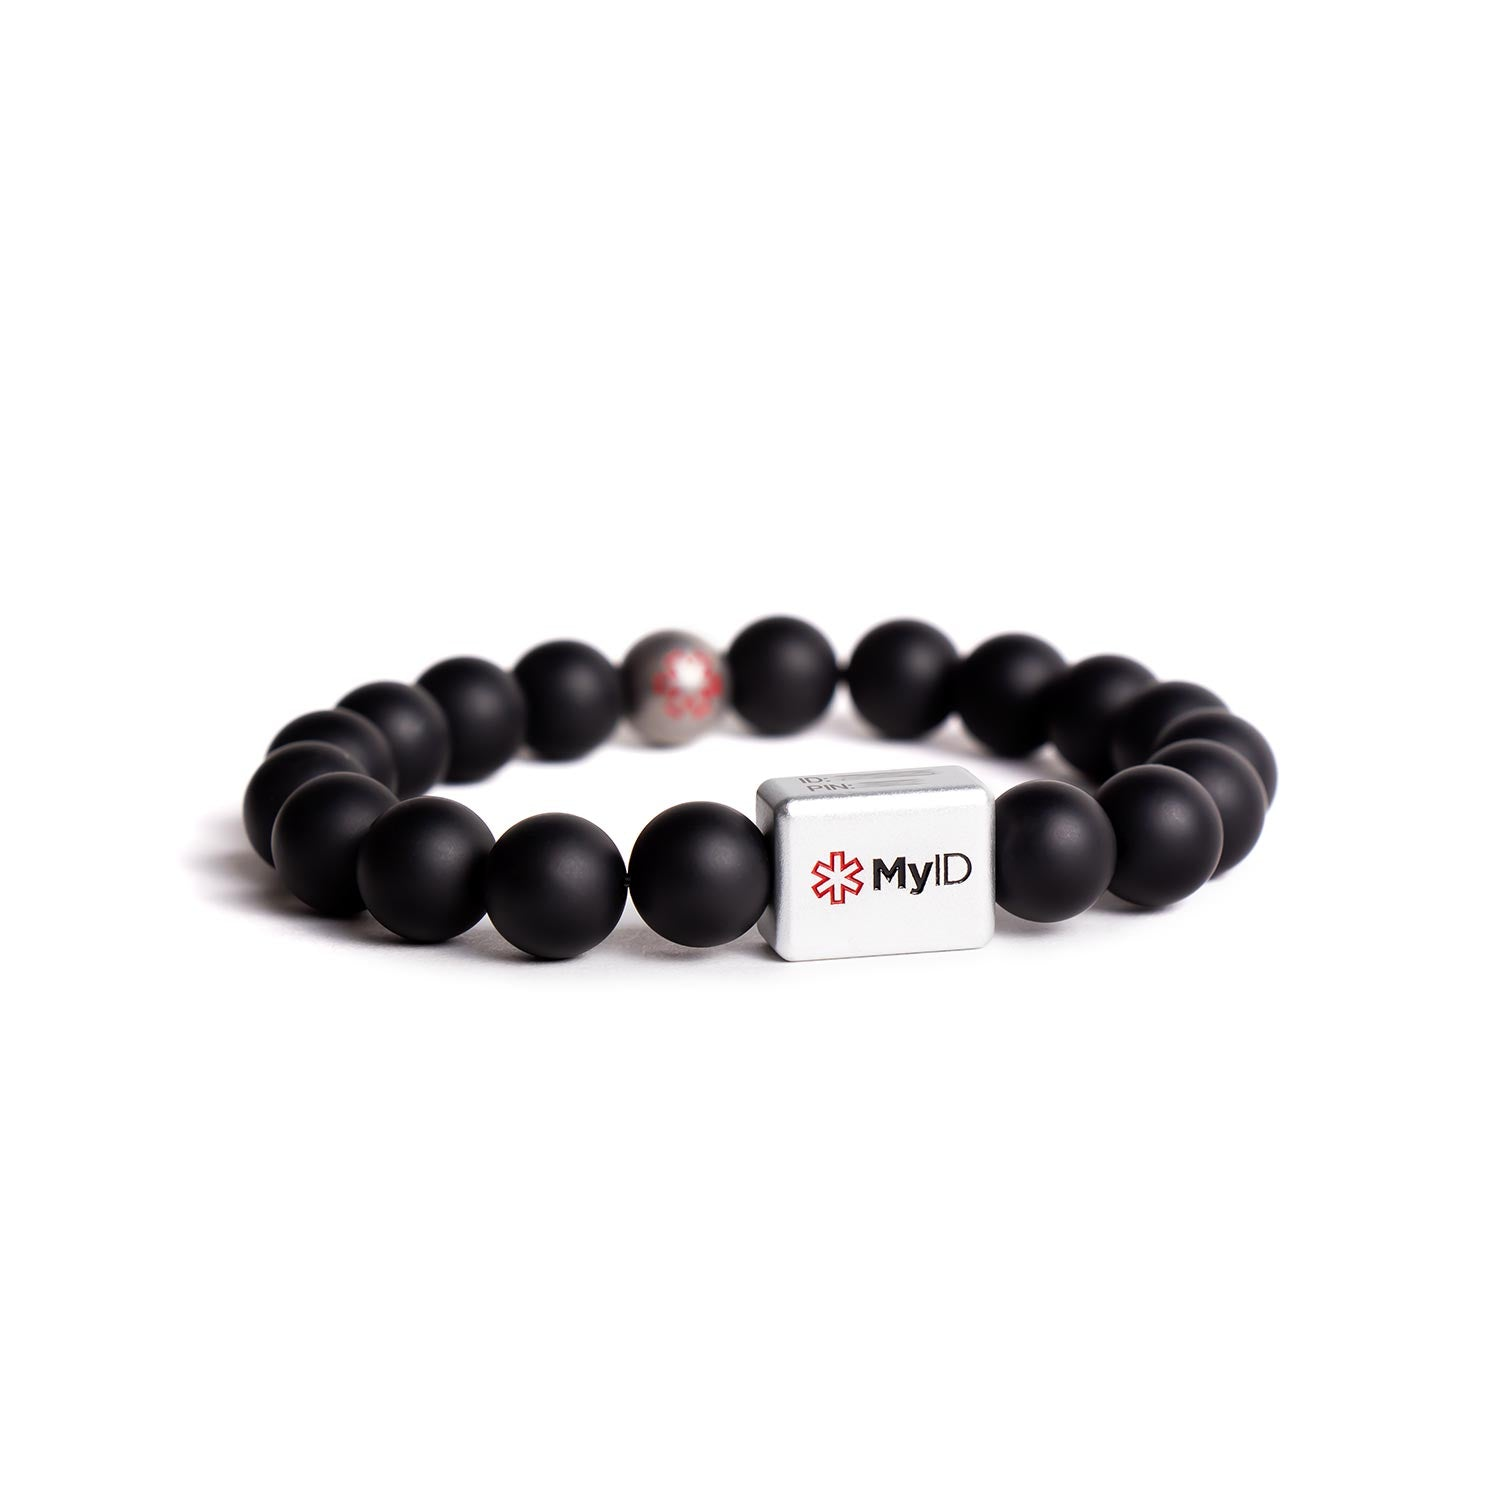 Black Agate Medical ID Bracelet